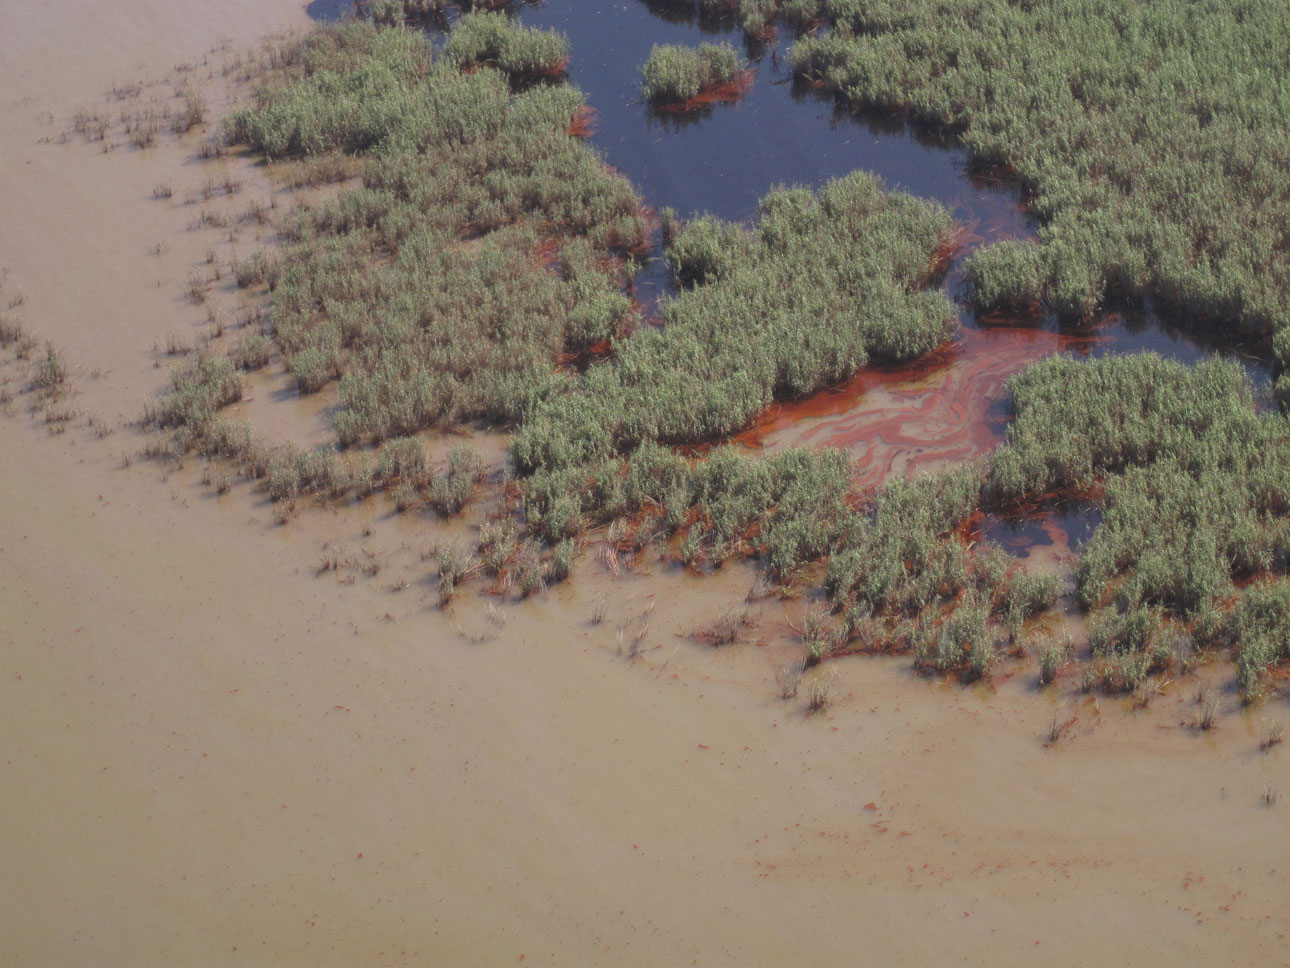 Dark brown oil floods a marsh after the Deepwater Horizon oil spill.<div class='credit'><strong>Credit:</strong> Dark brown oil floods a marsh after the Deepwater Horizon oil spill.</div>